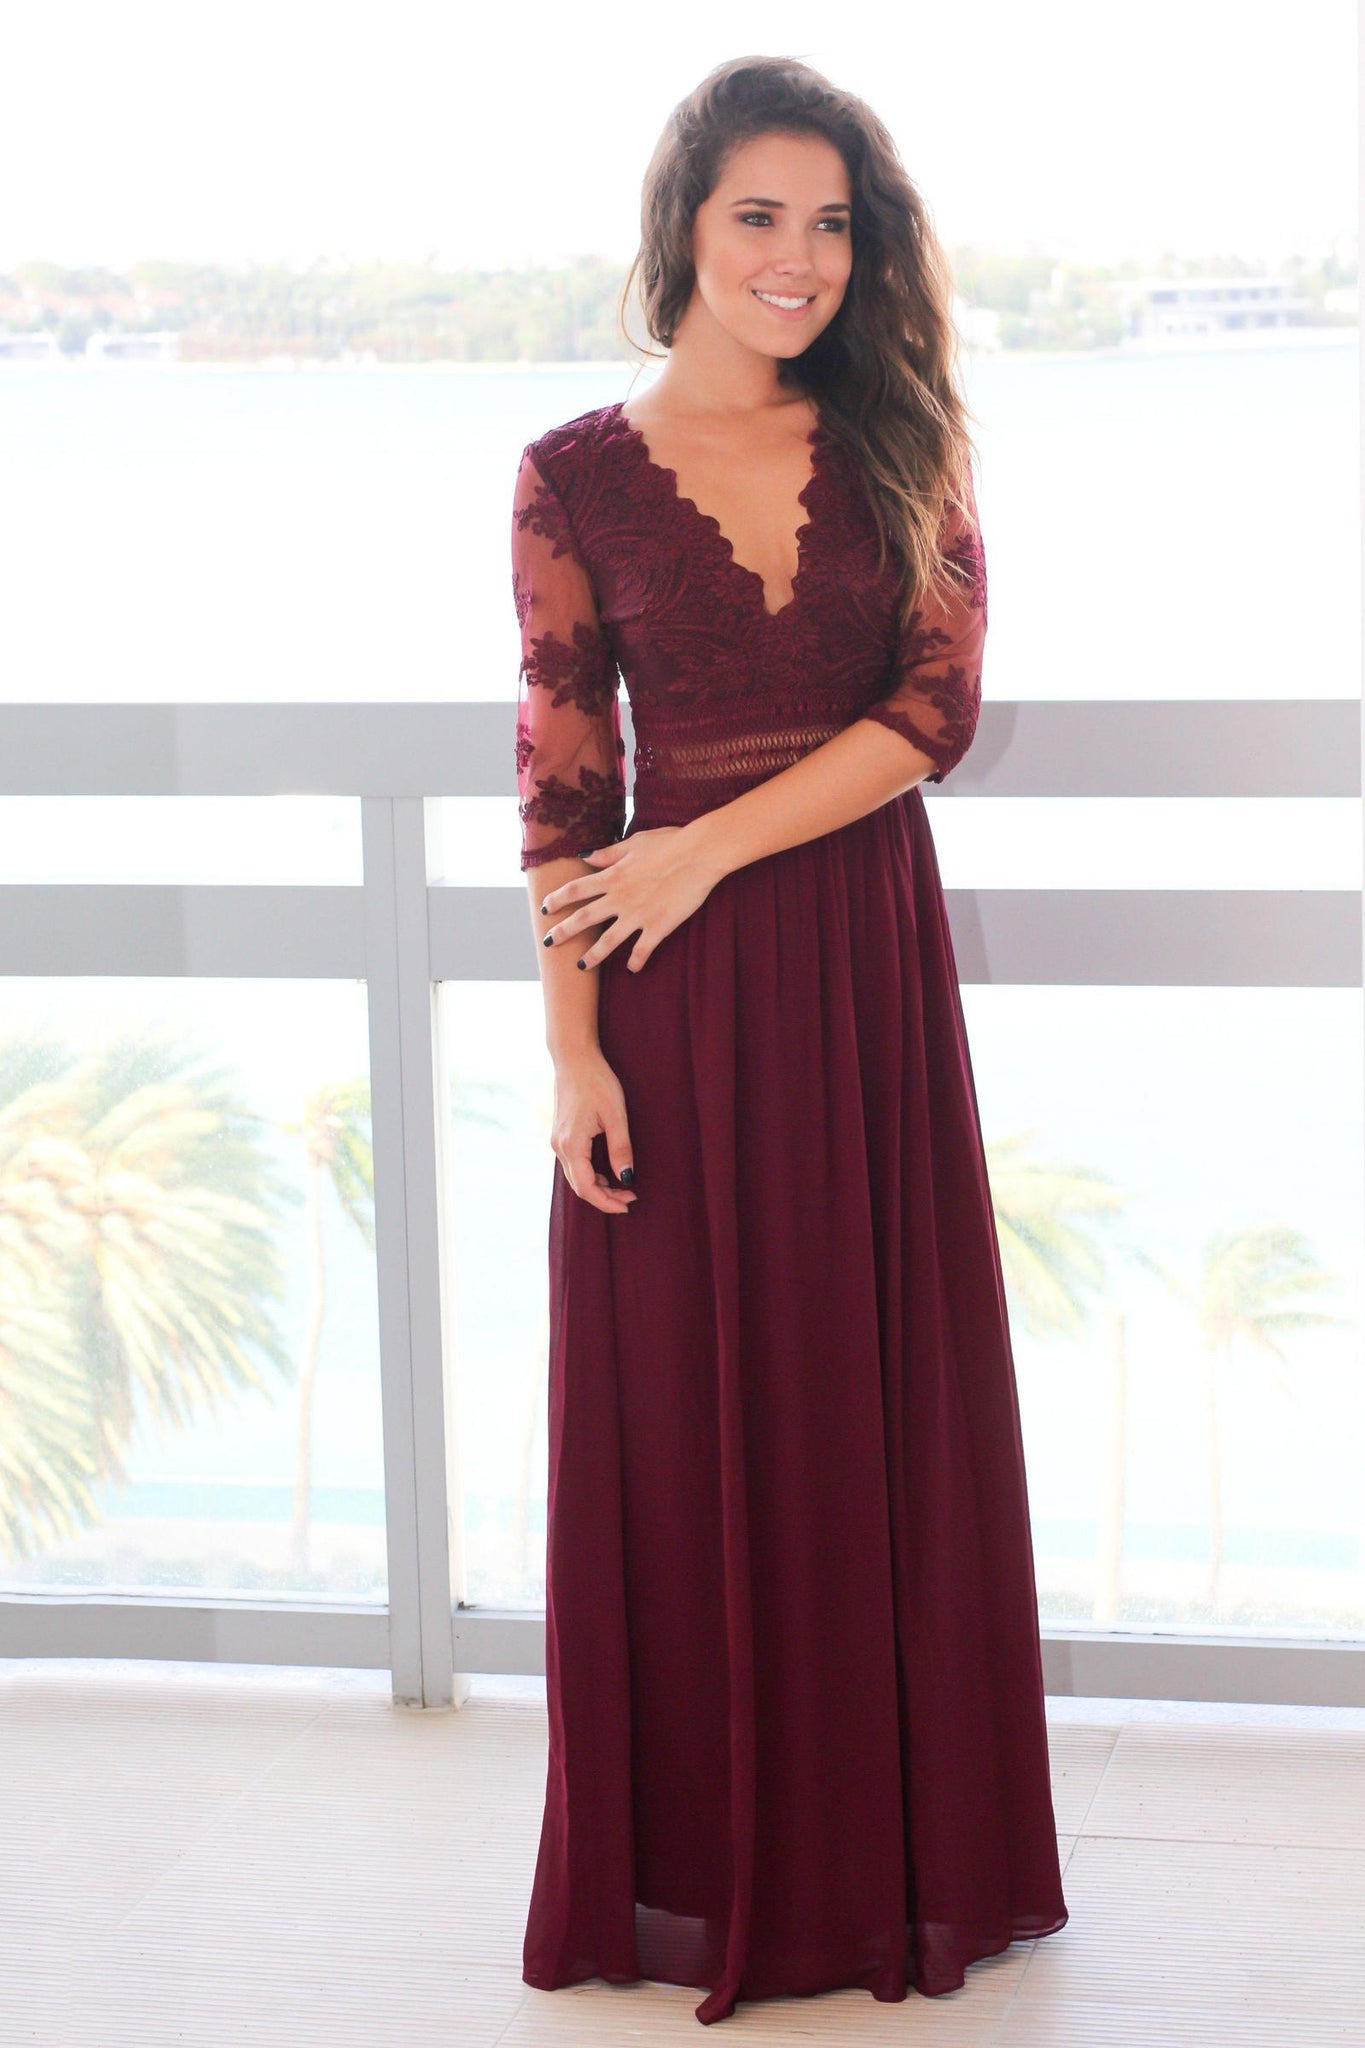 be6b4c5c9a26 Burgundy Chiffon V-Neck 1/2 Sleeve Formal Evening Dress With Illusion Lace  Bodice